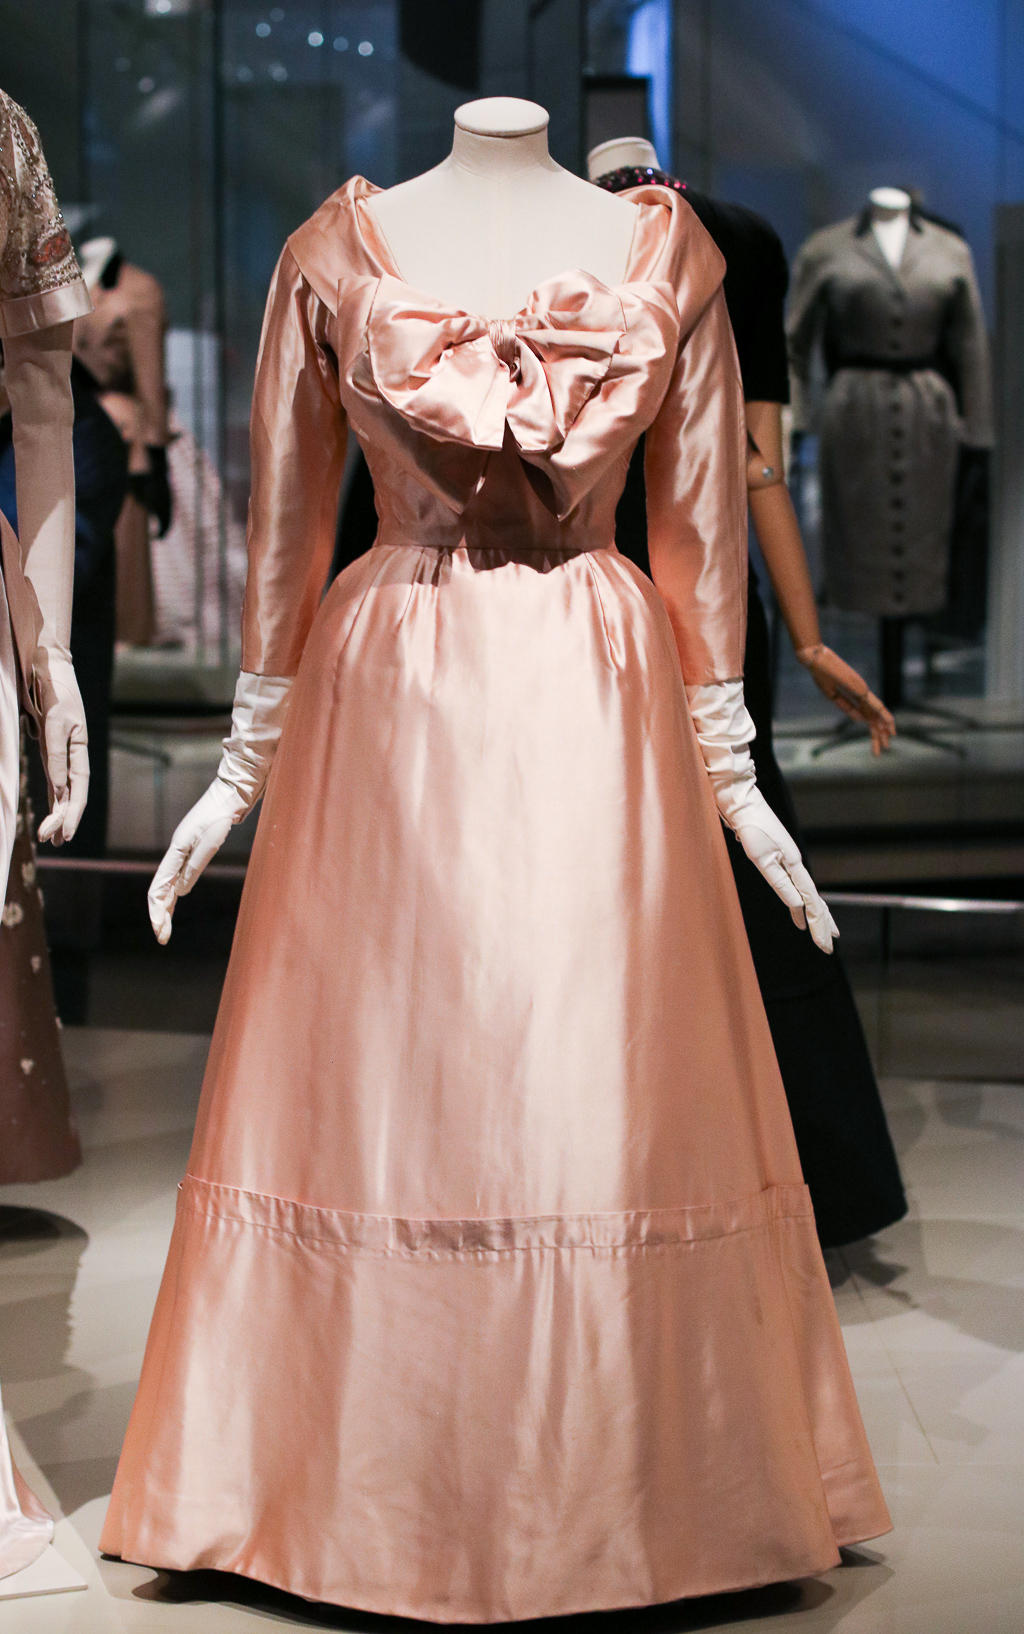 I was invited to view the Christian Dior Exhibit Presented by Holt Renfrew at the ROM - Here is my experience   Style Domination